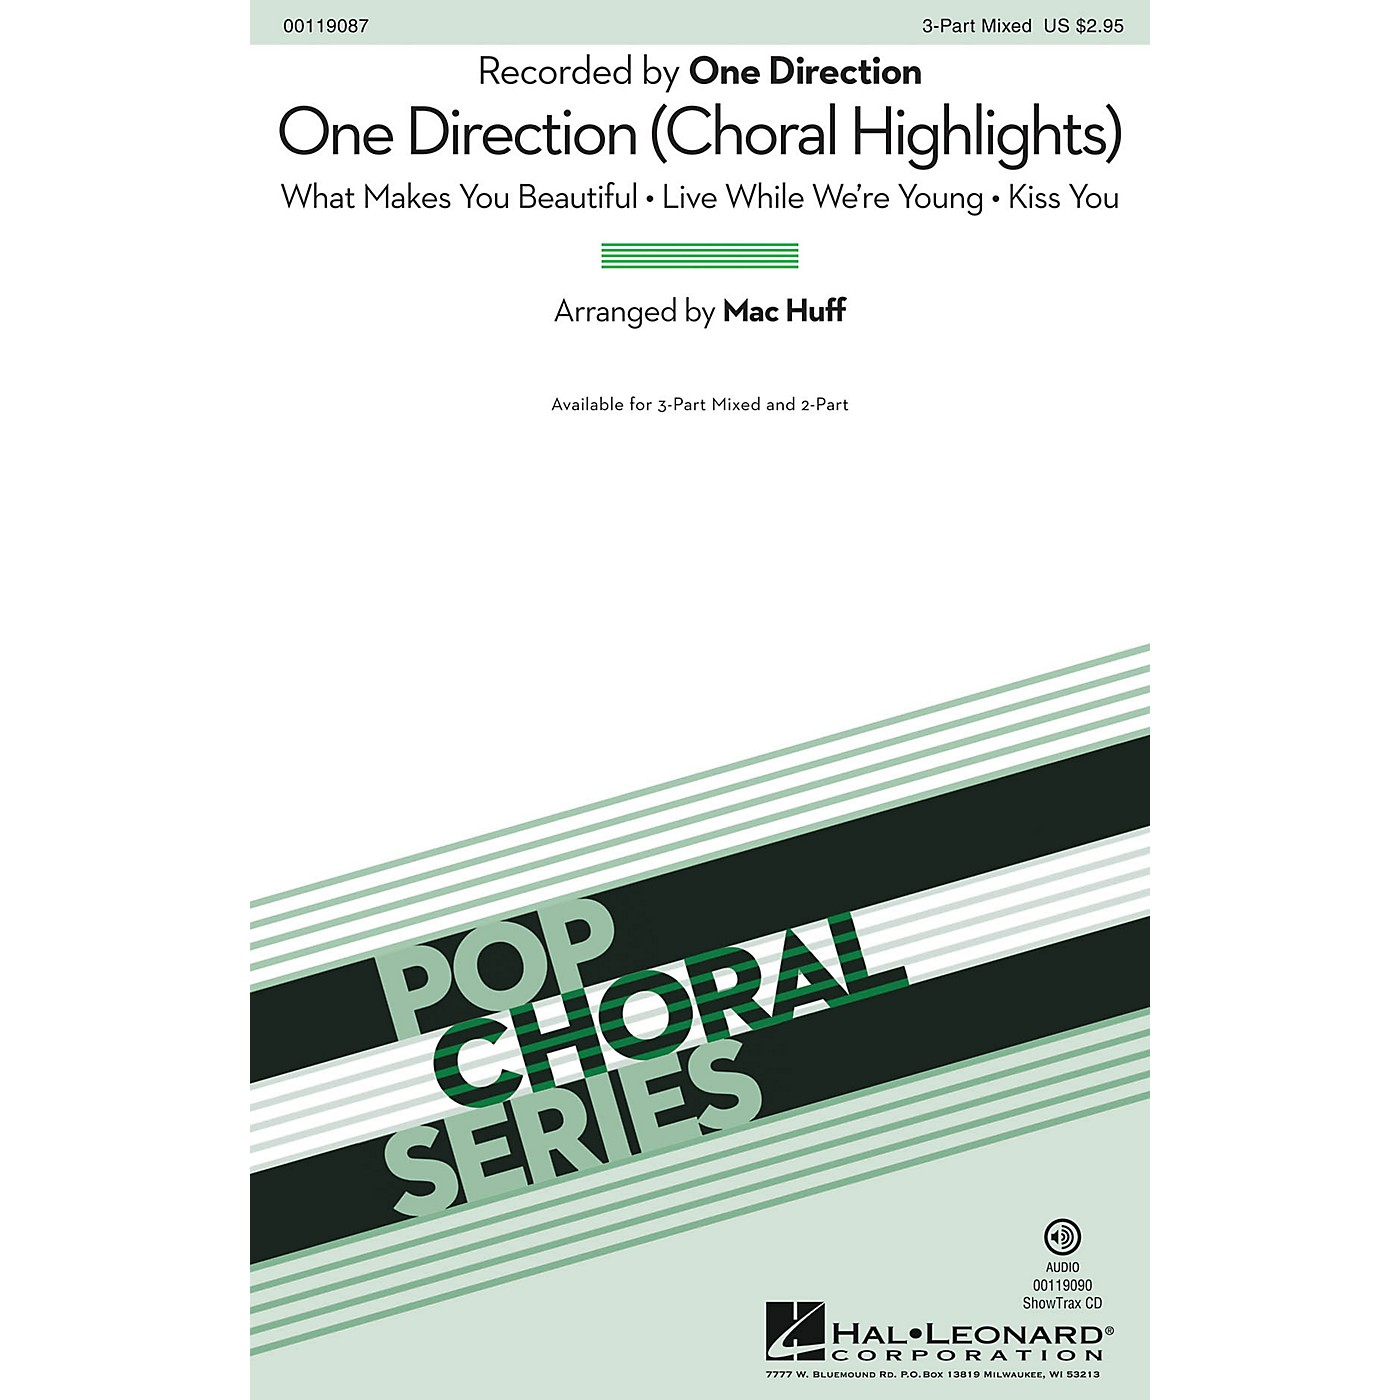 Hal Leonard One Direction (Choral Highlights) 3-Part Mixed by One Direction arranged by Mac Huff thumbnail